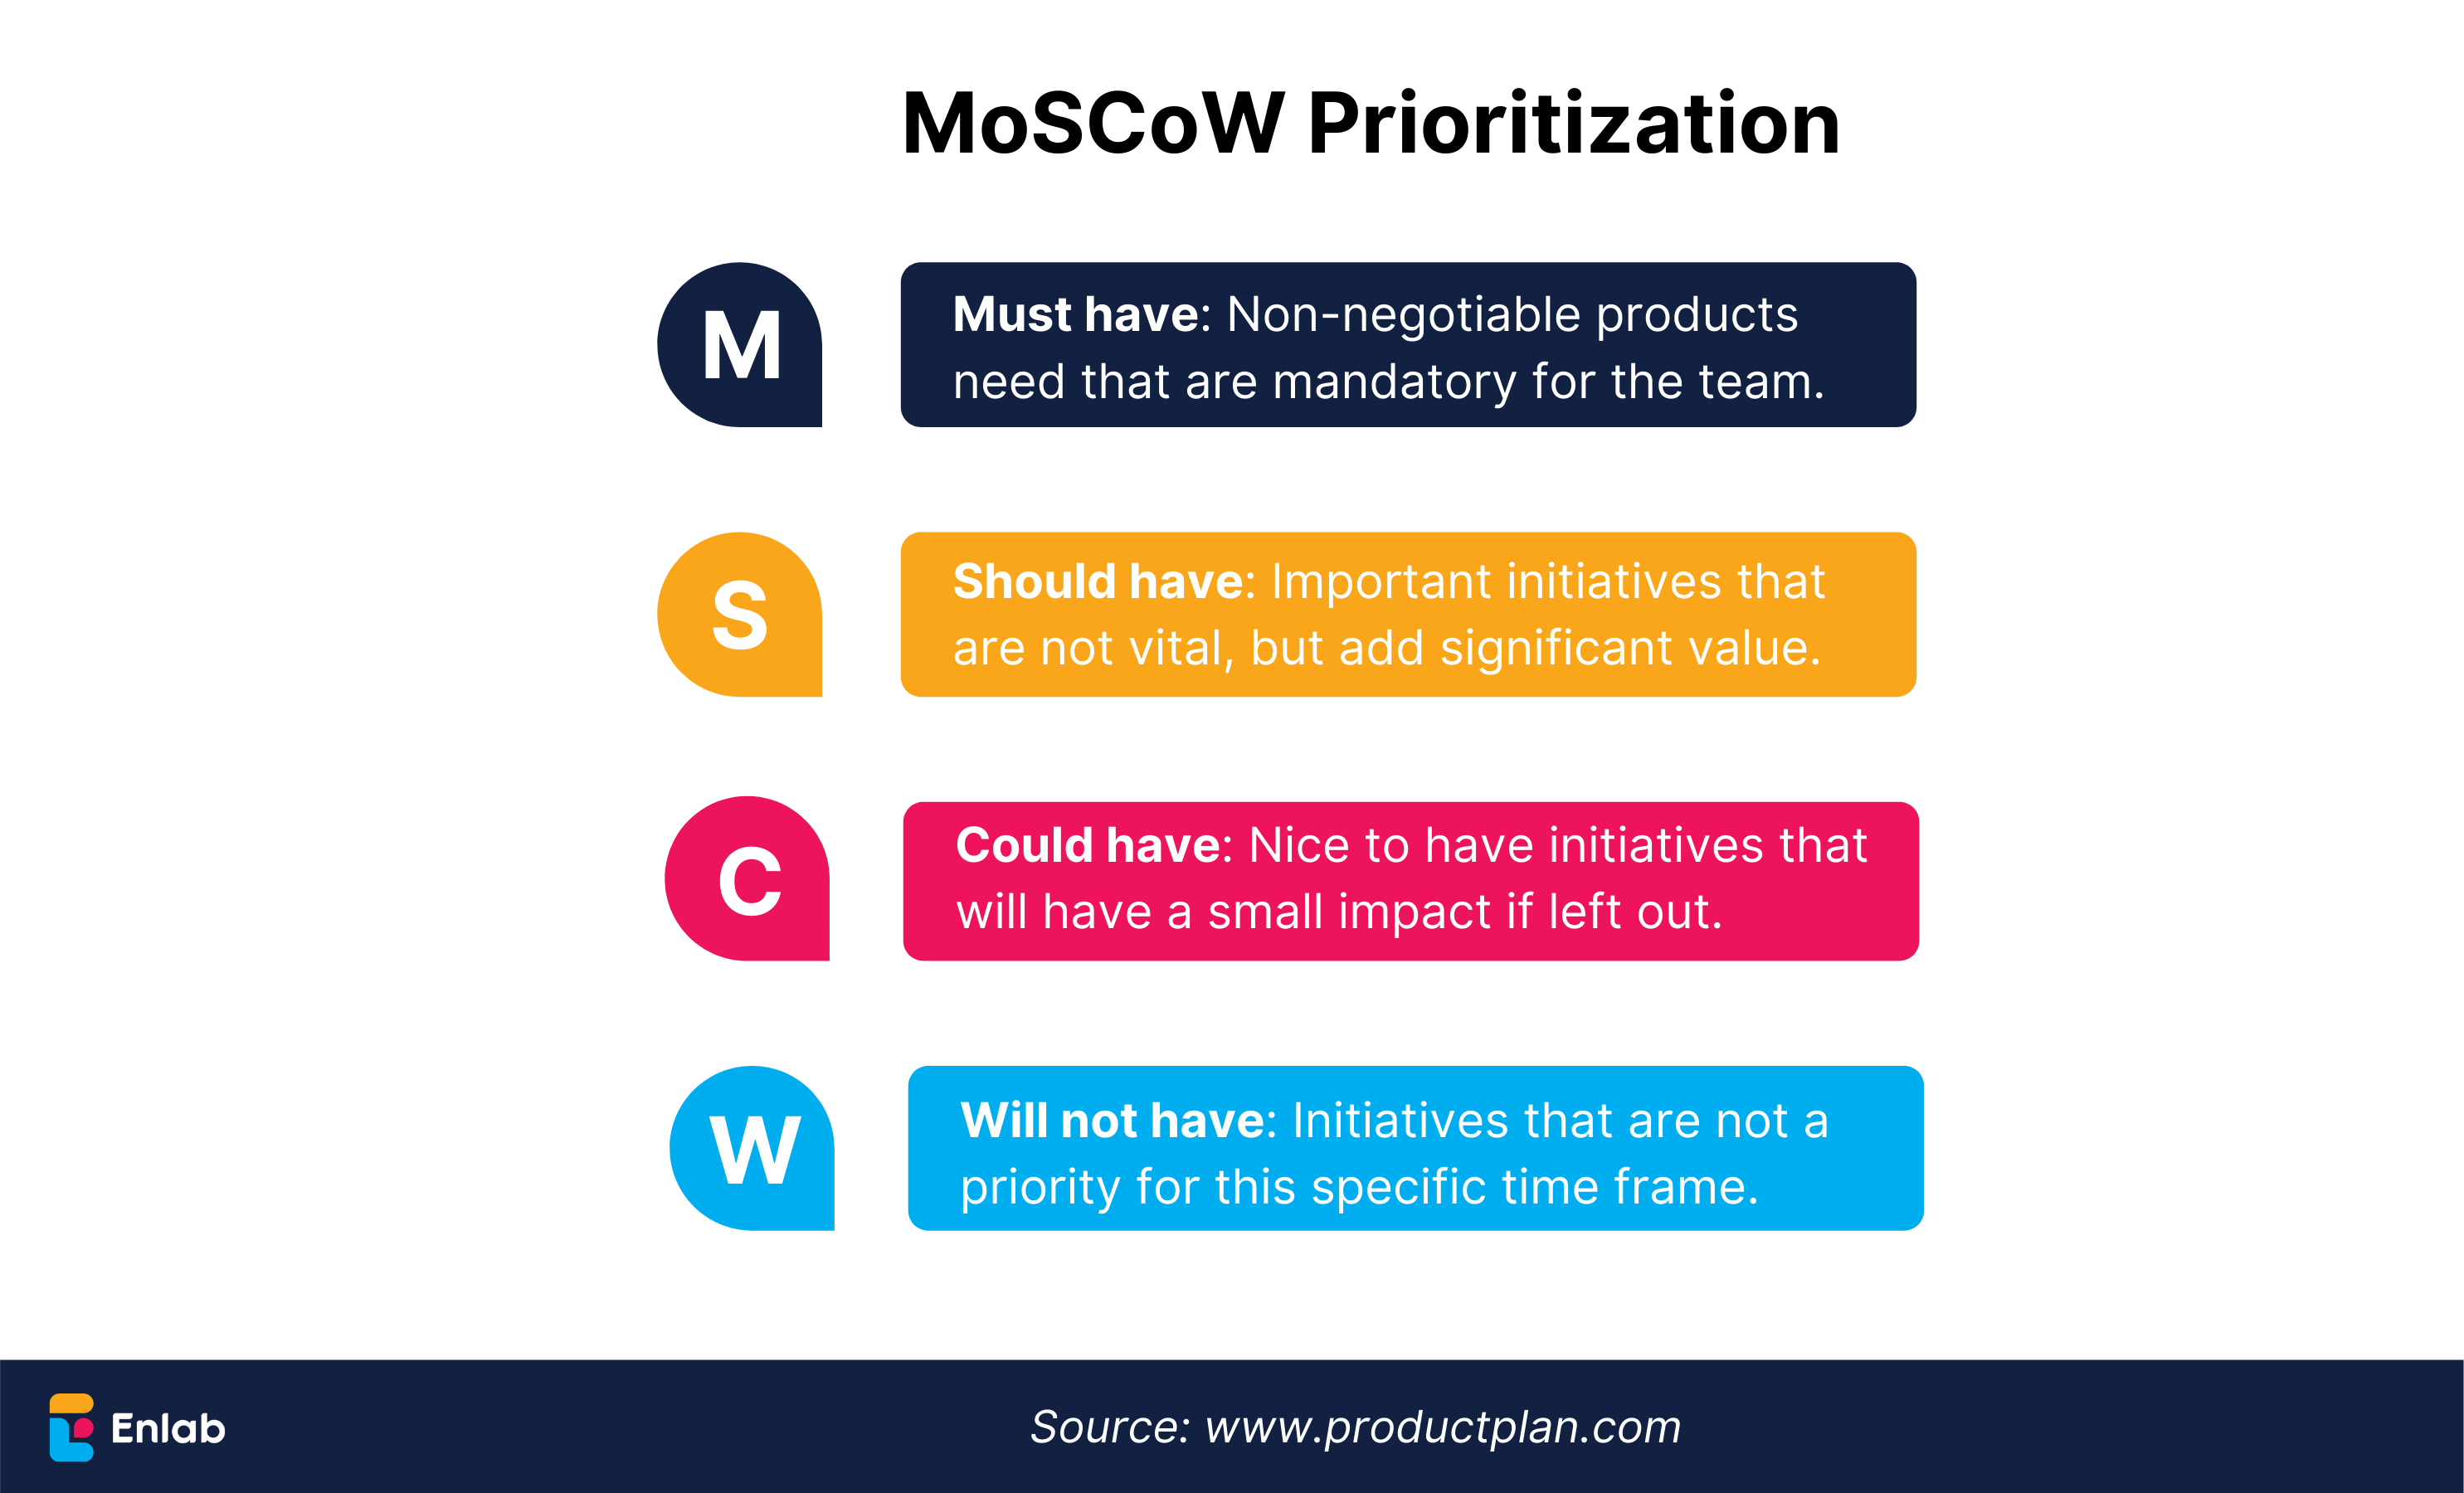 MoSCoW Prioritization Cost Estimation by Enlab